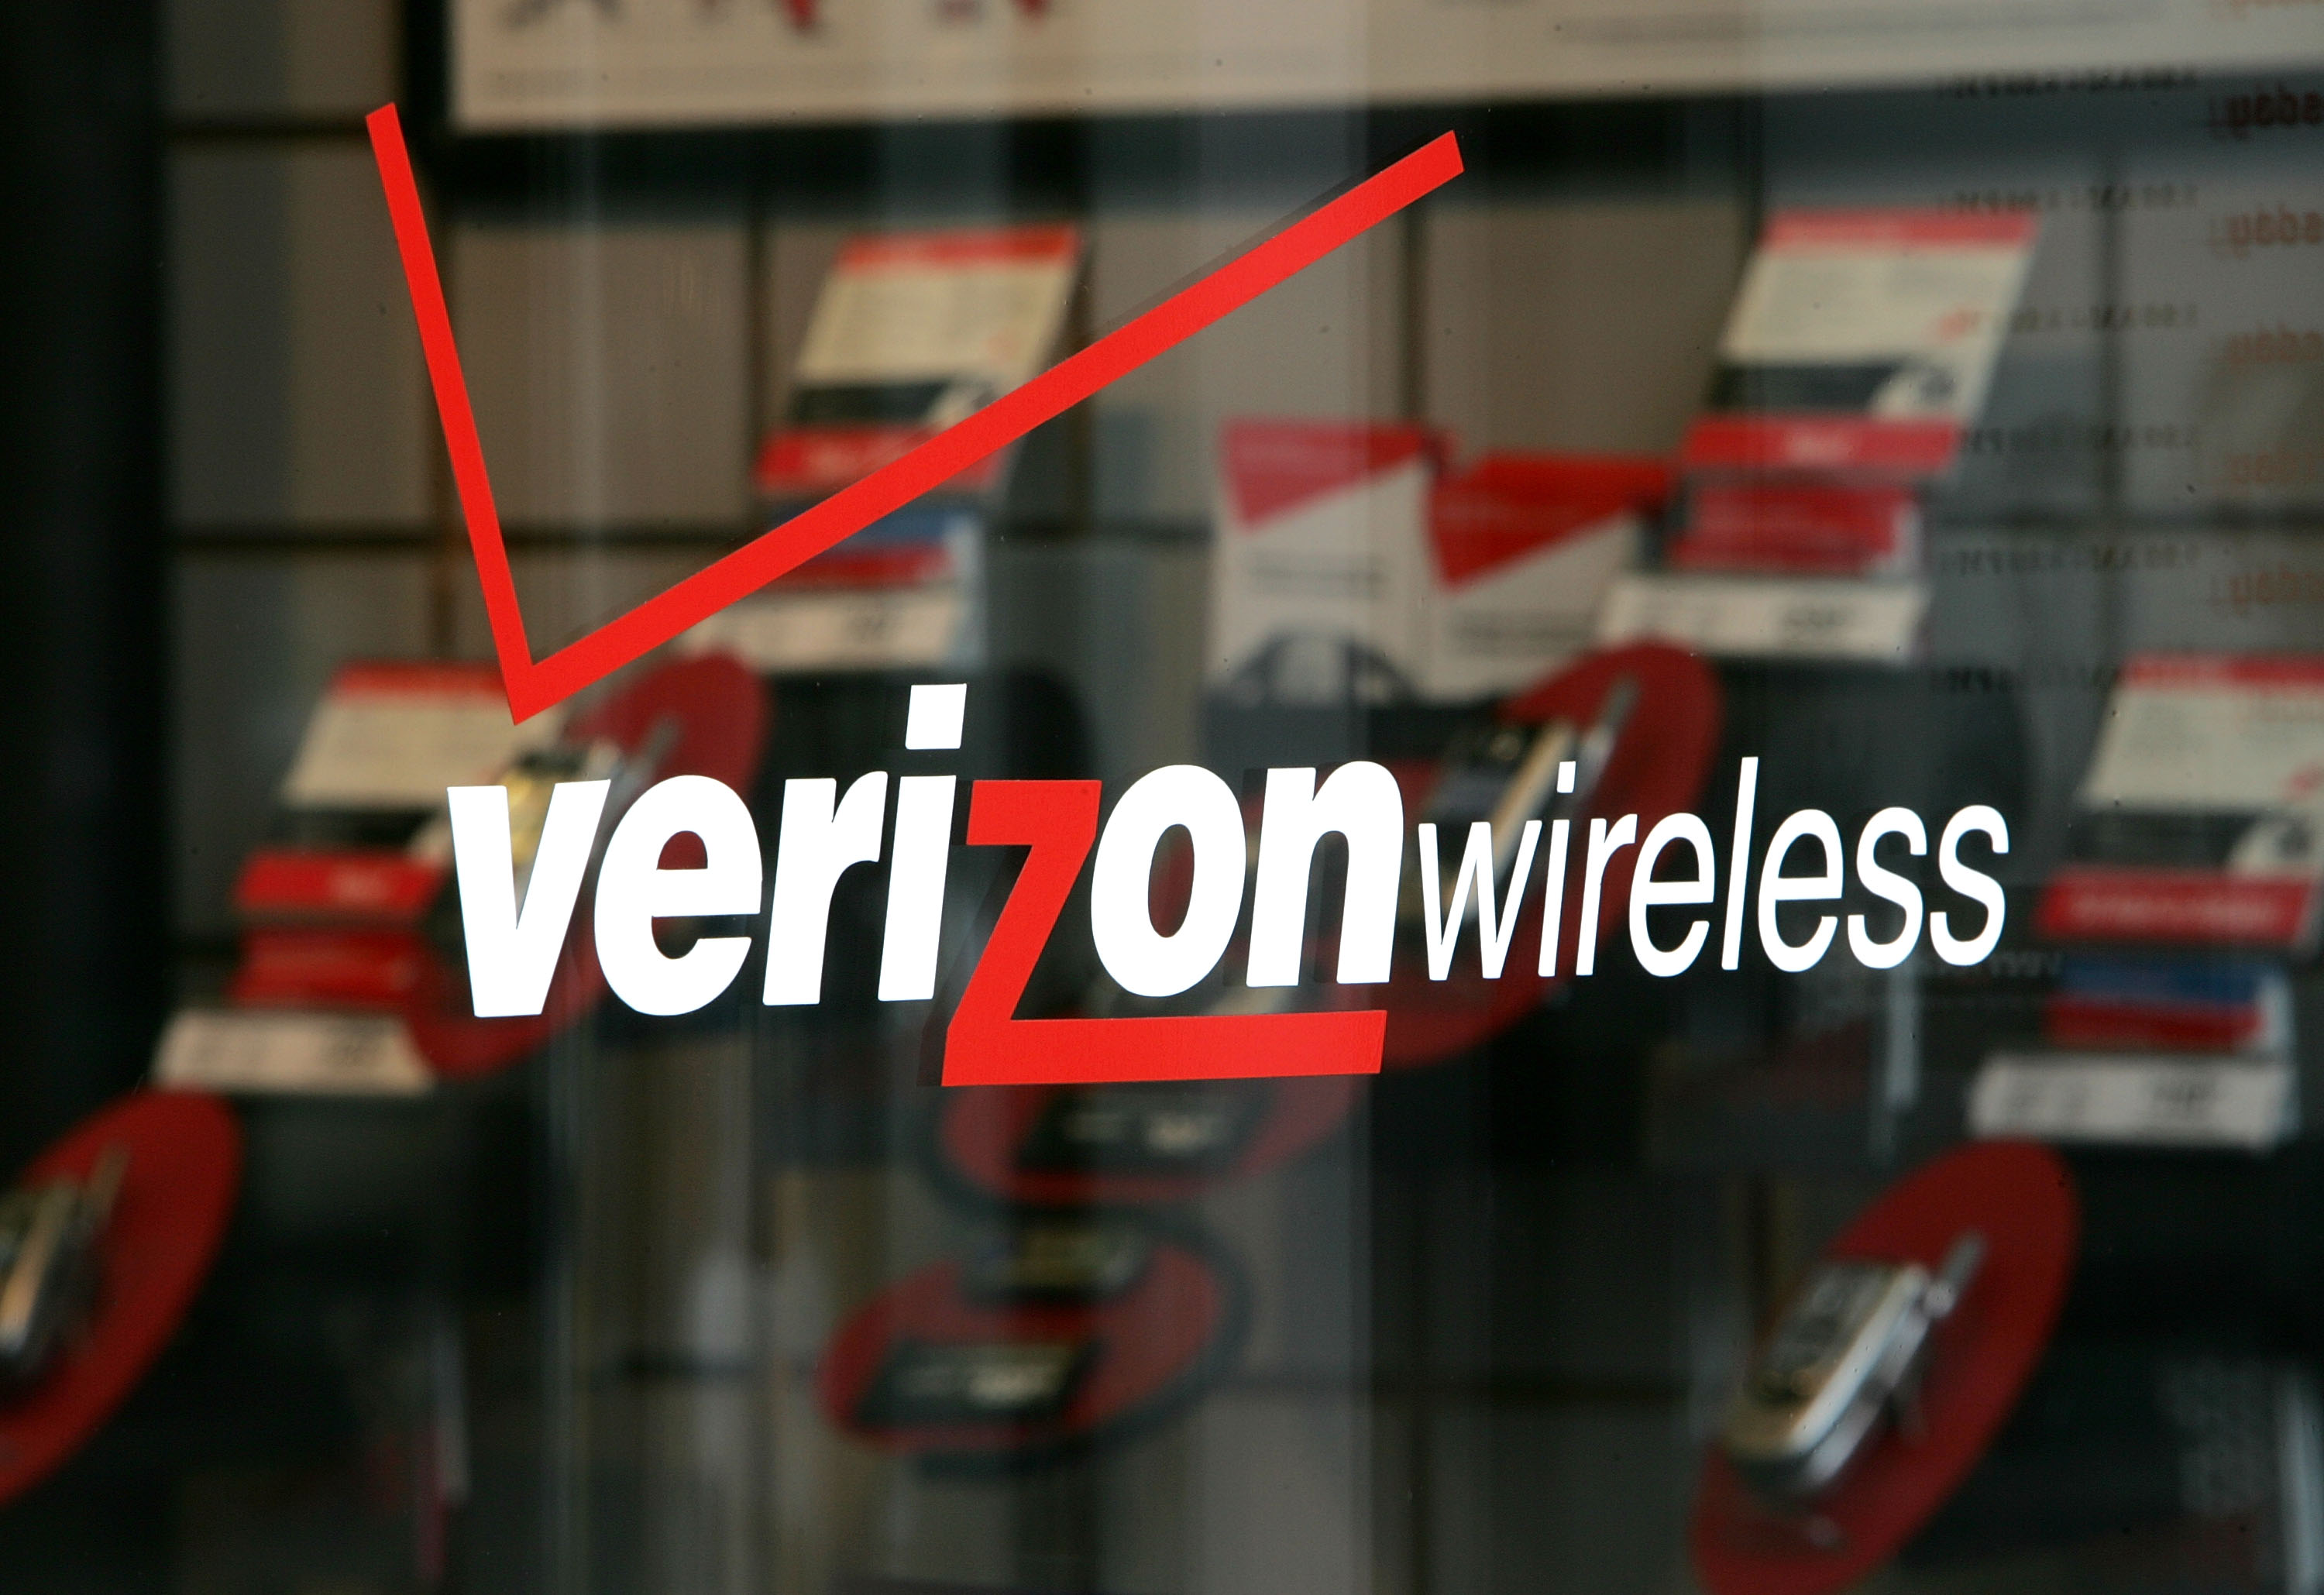 Vodafone Confirms Negotiations Over Its Share of Verizon Wireless